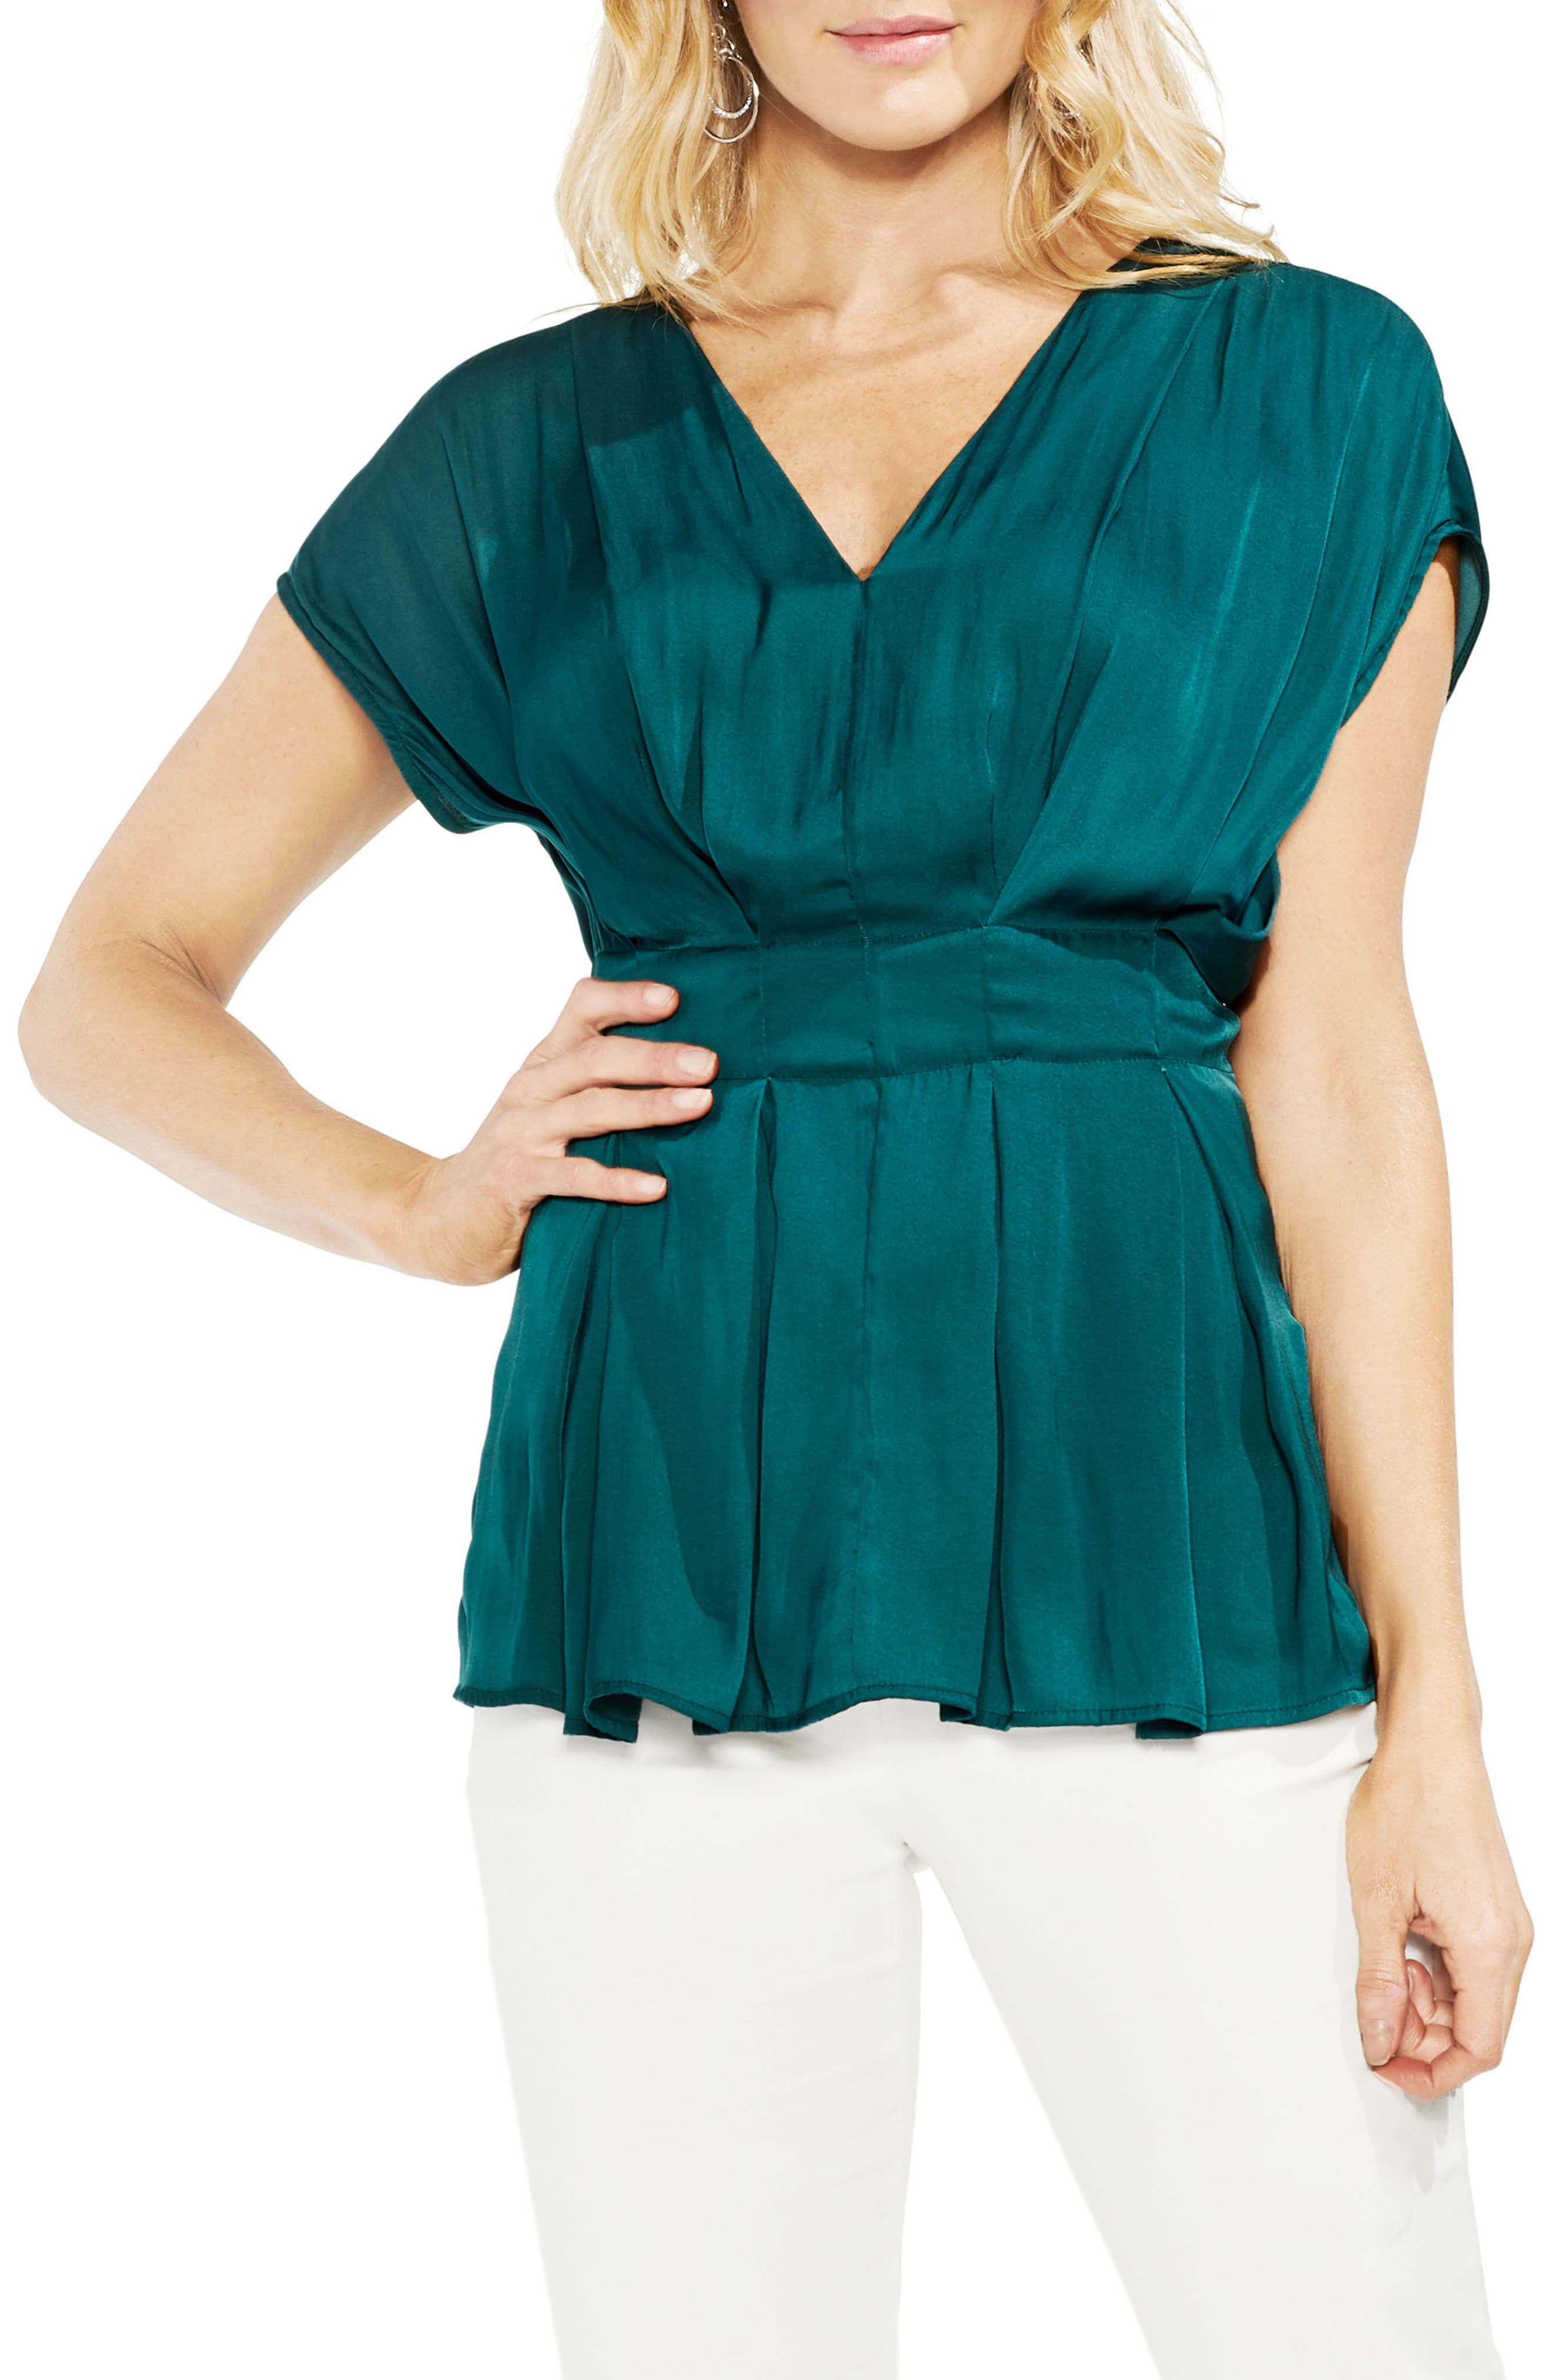 Cinched Waist Top,                         Main,                         color, 300